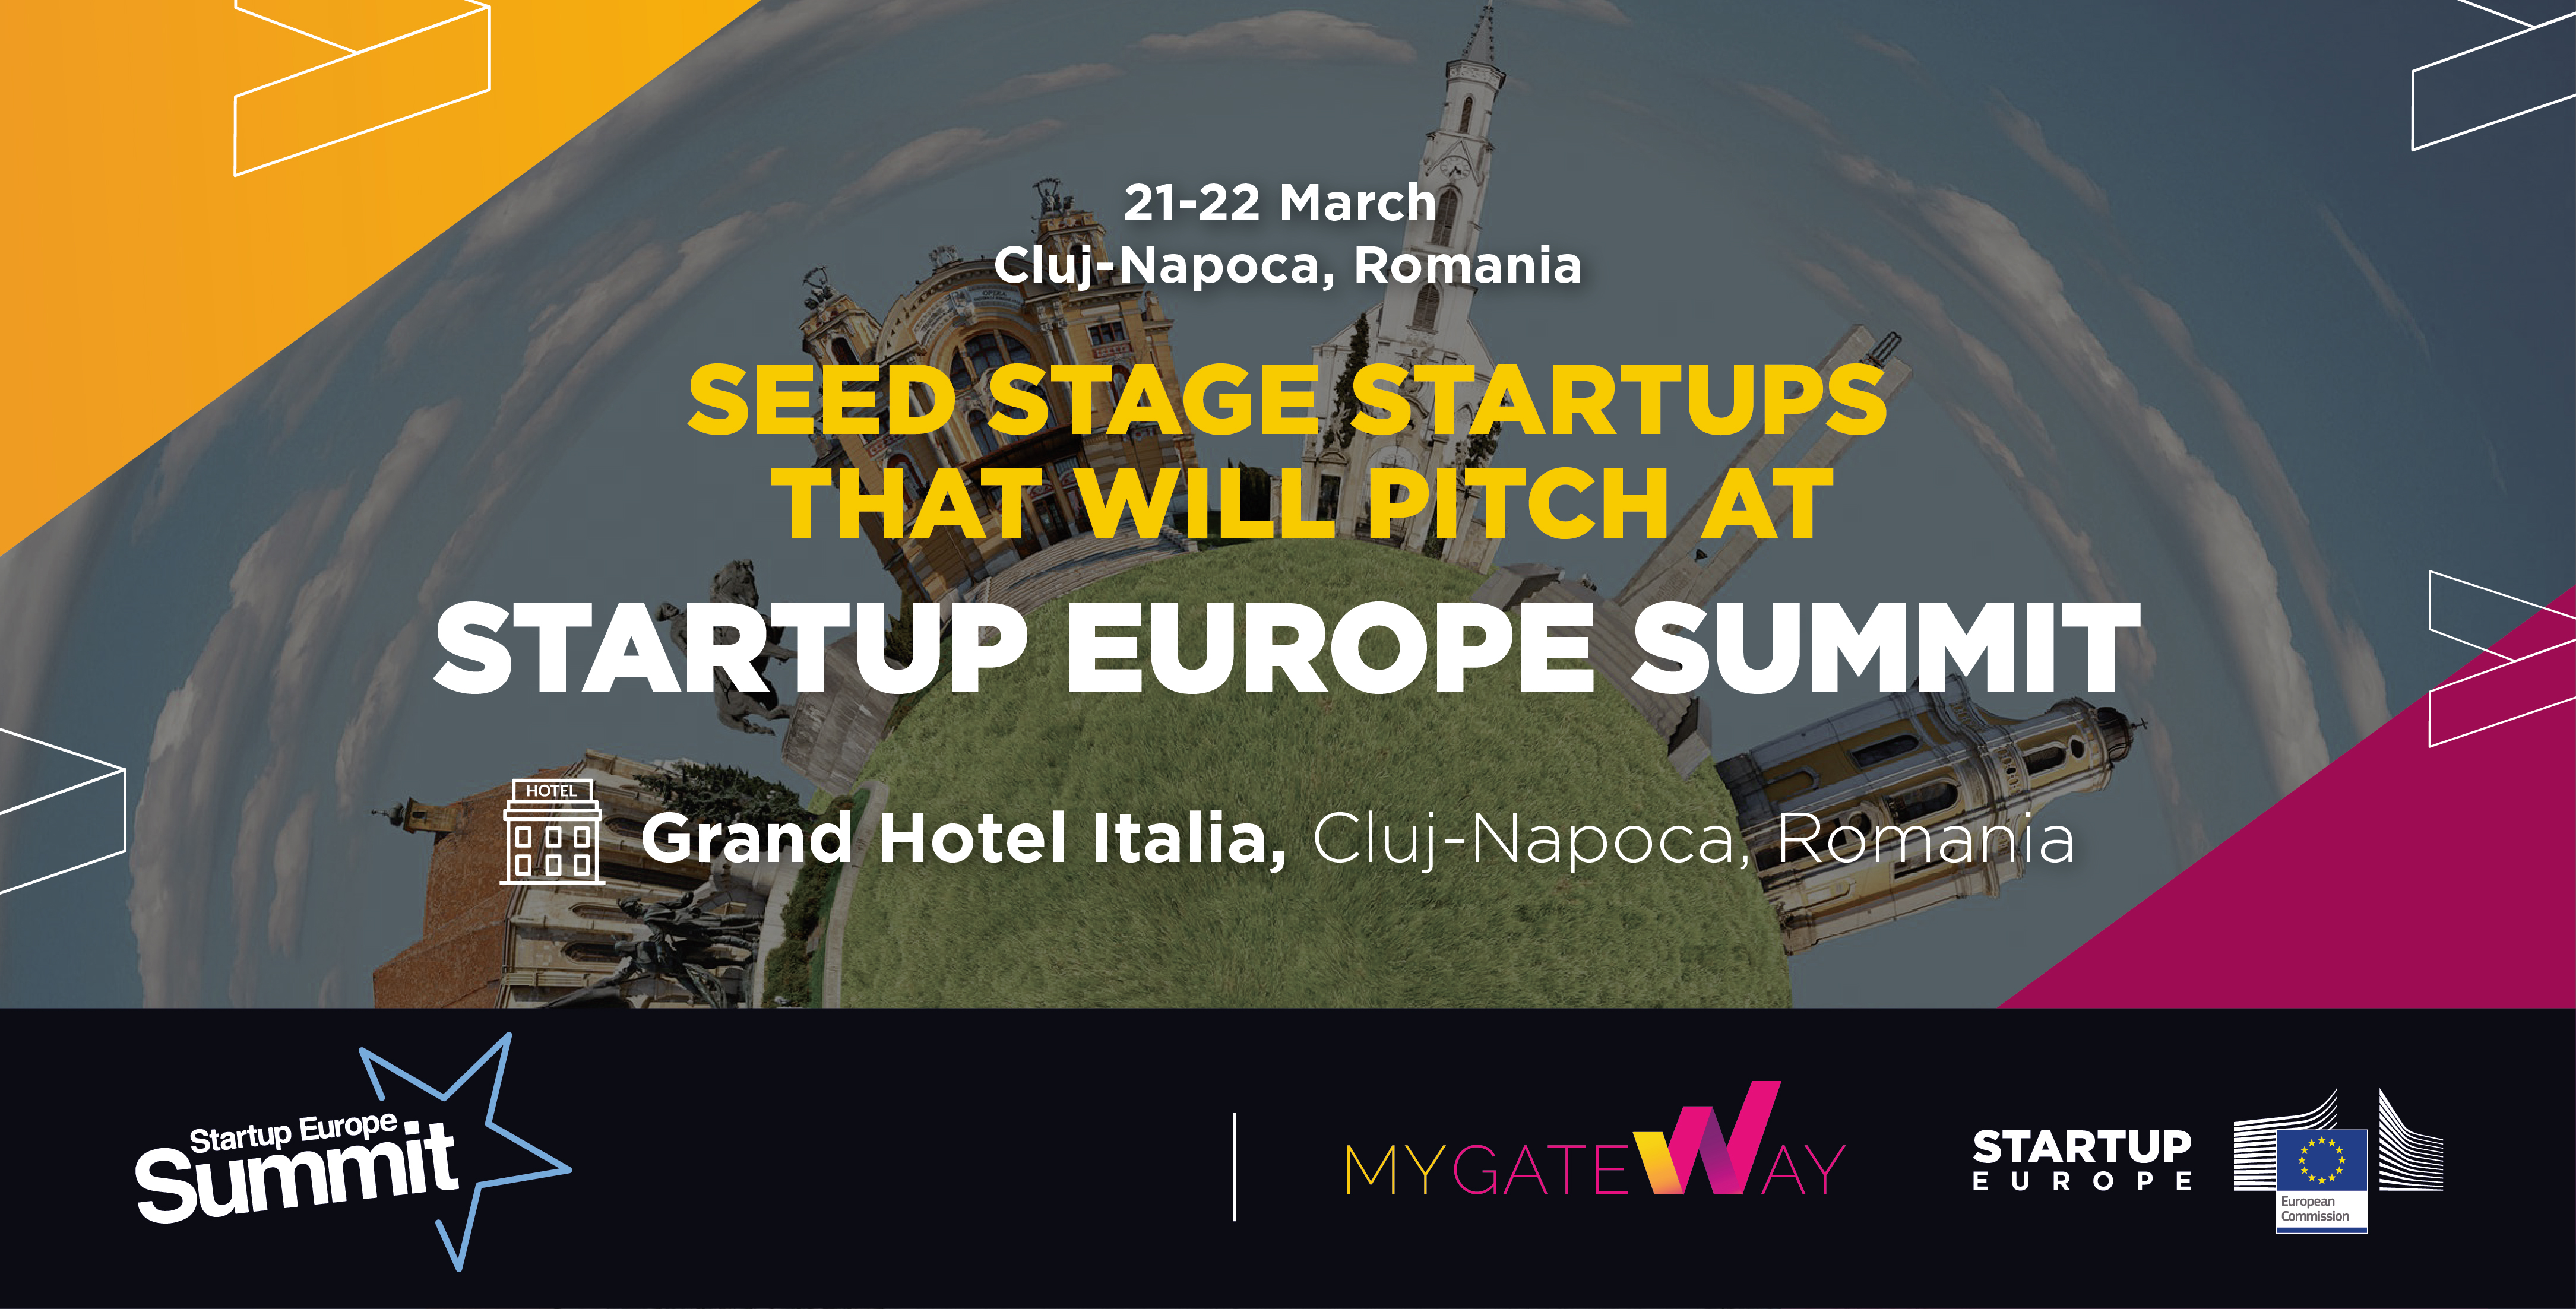 Here are the selected seed-stage startups that will come with us to Cluj-Napoca!